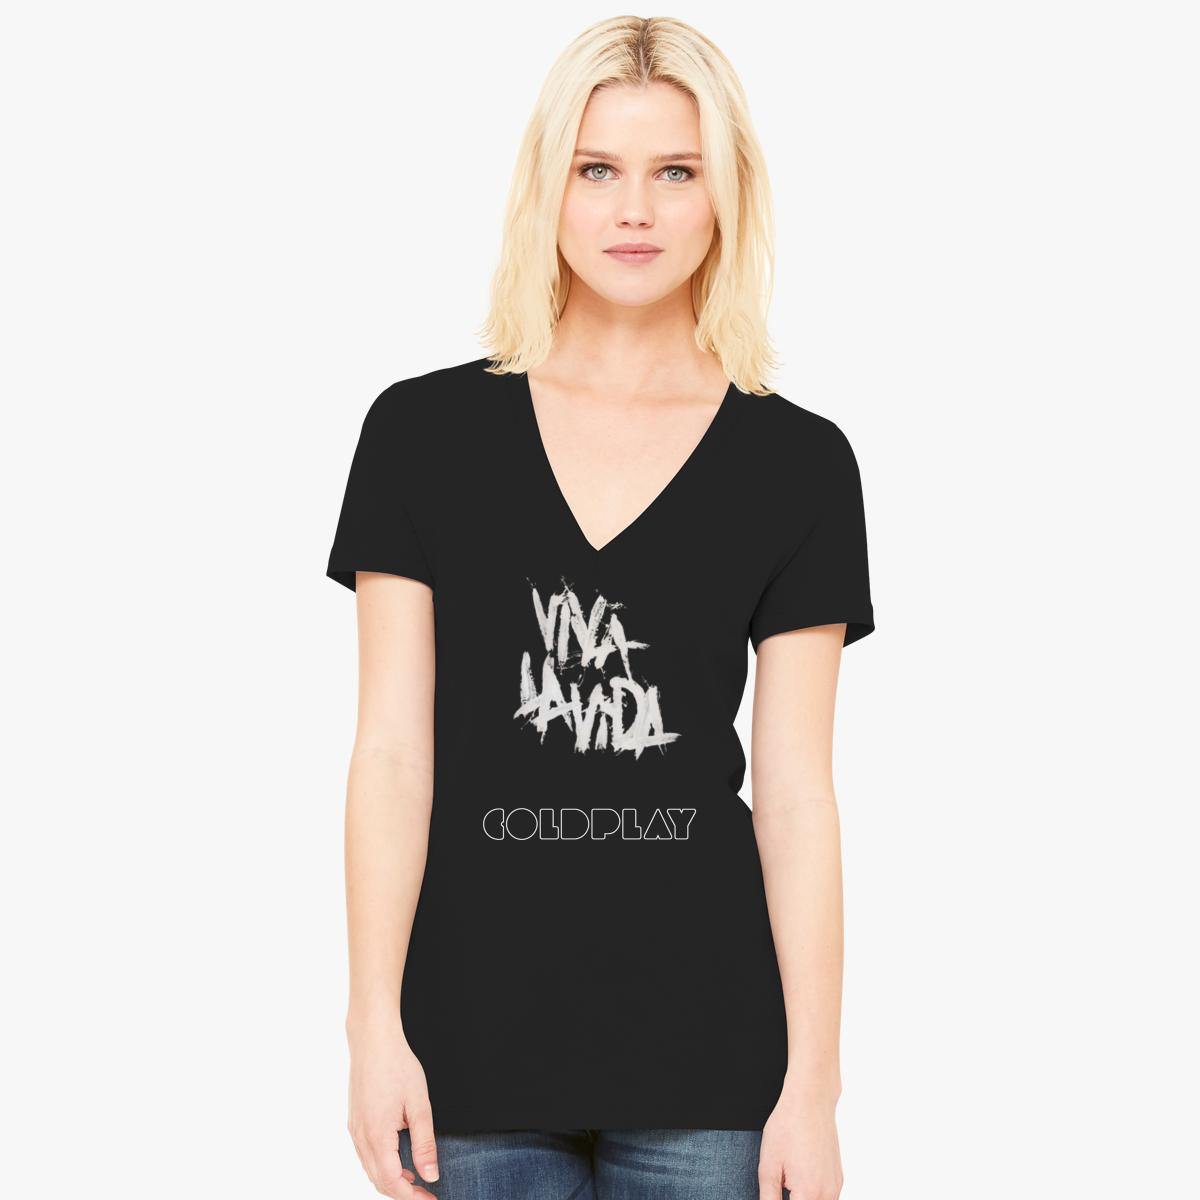 Countdown Package Cheap Price Printed Racerback Top - september 3 by VIDA VIDA Clearance Low Shipping Outlet Choice 100% Authentic Cheap Price Cheap Perfect fk2Omd4